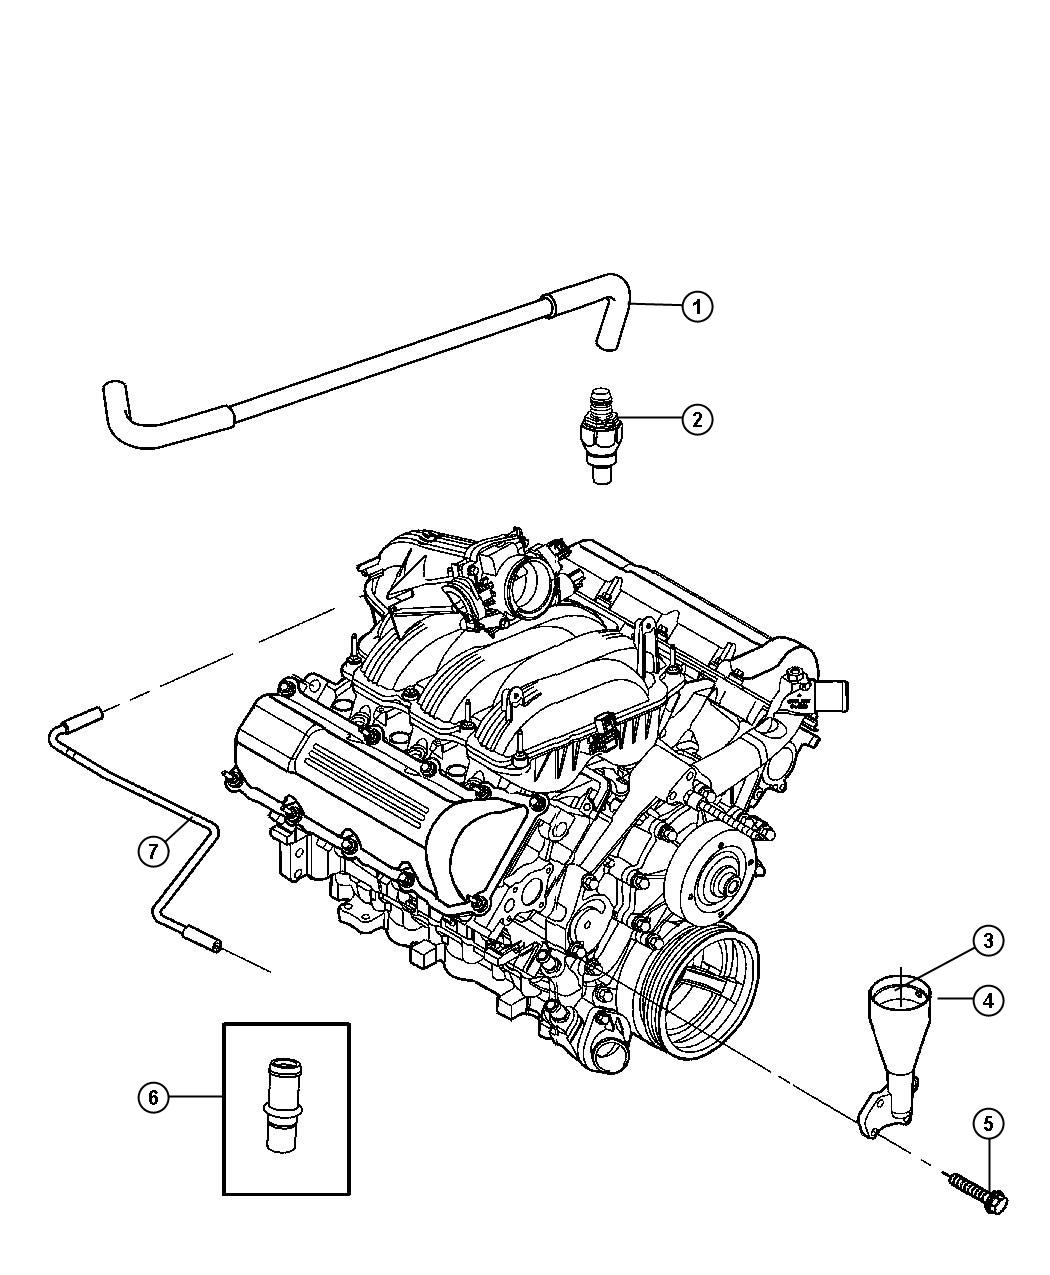 66 Duramax Engine Parts Diagram